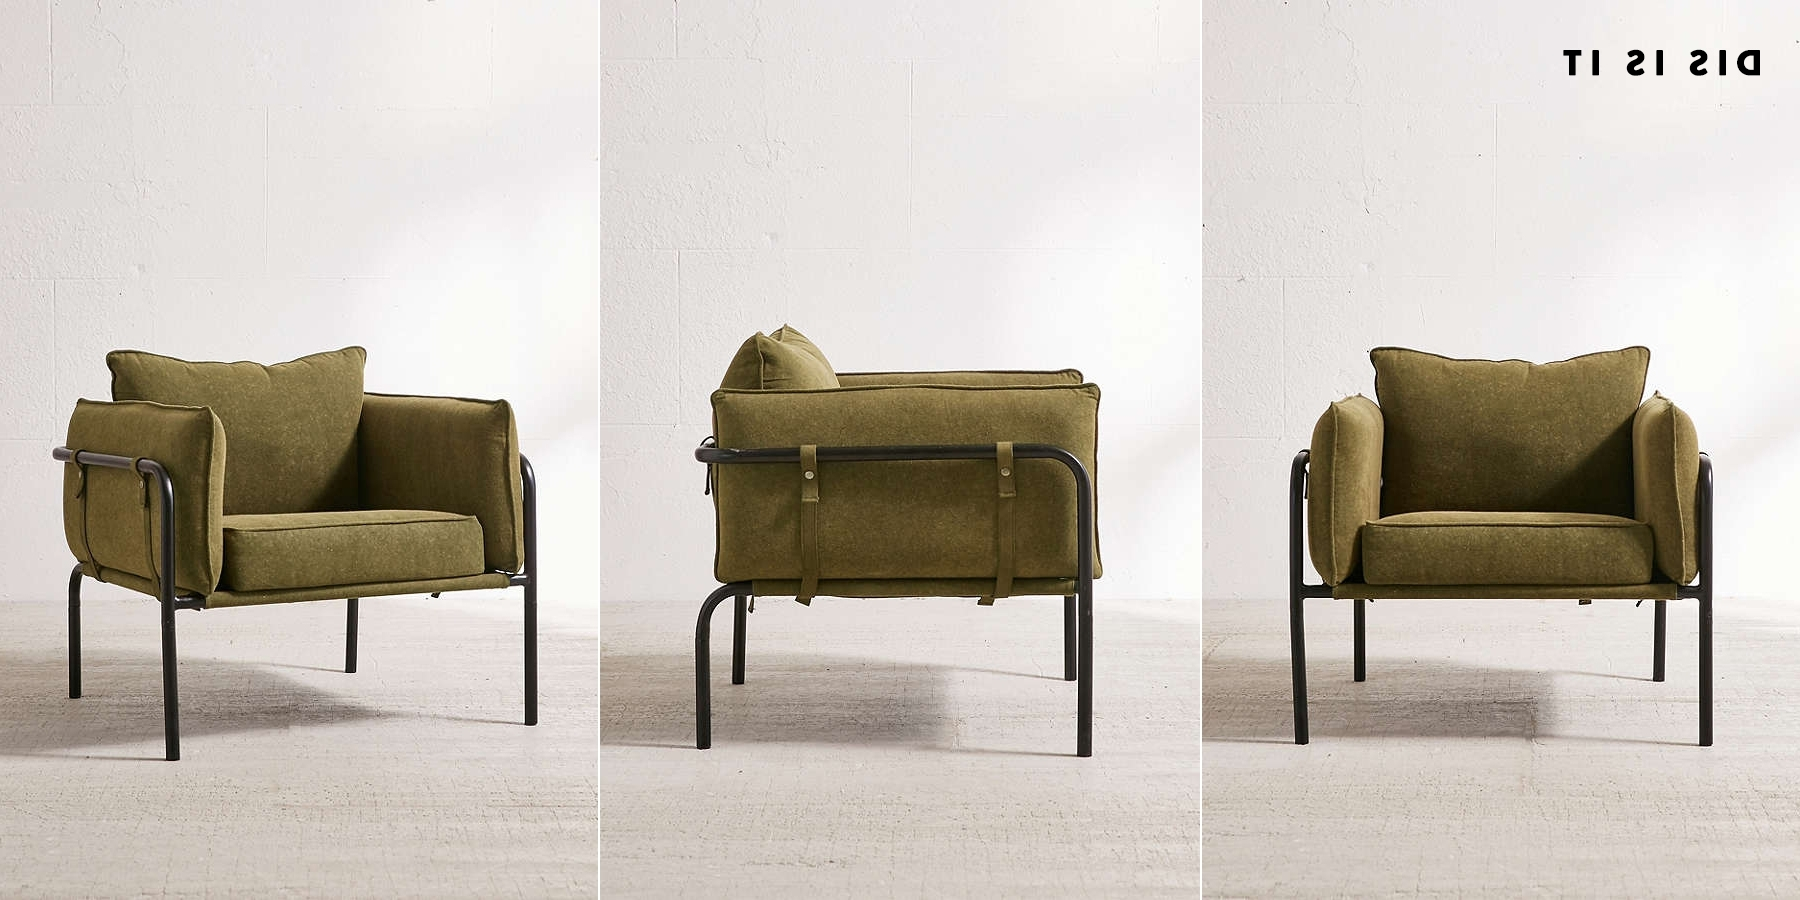 Most Recently Released Green Sofa Chairs In Army Green Chairs For The Fireplace (View 17 of 20)